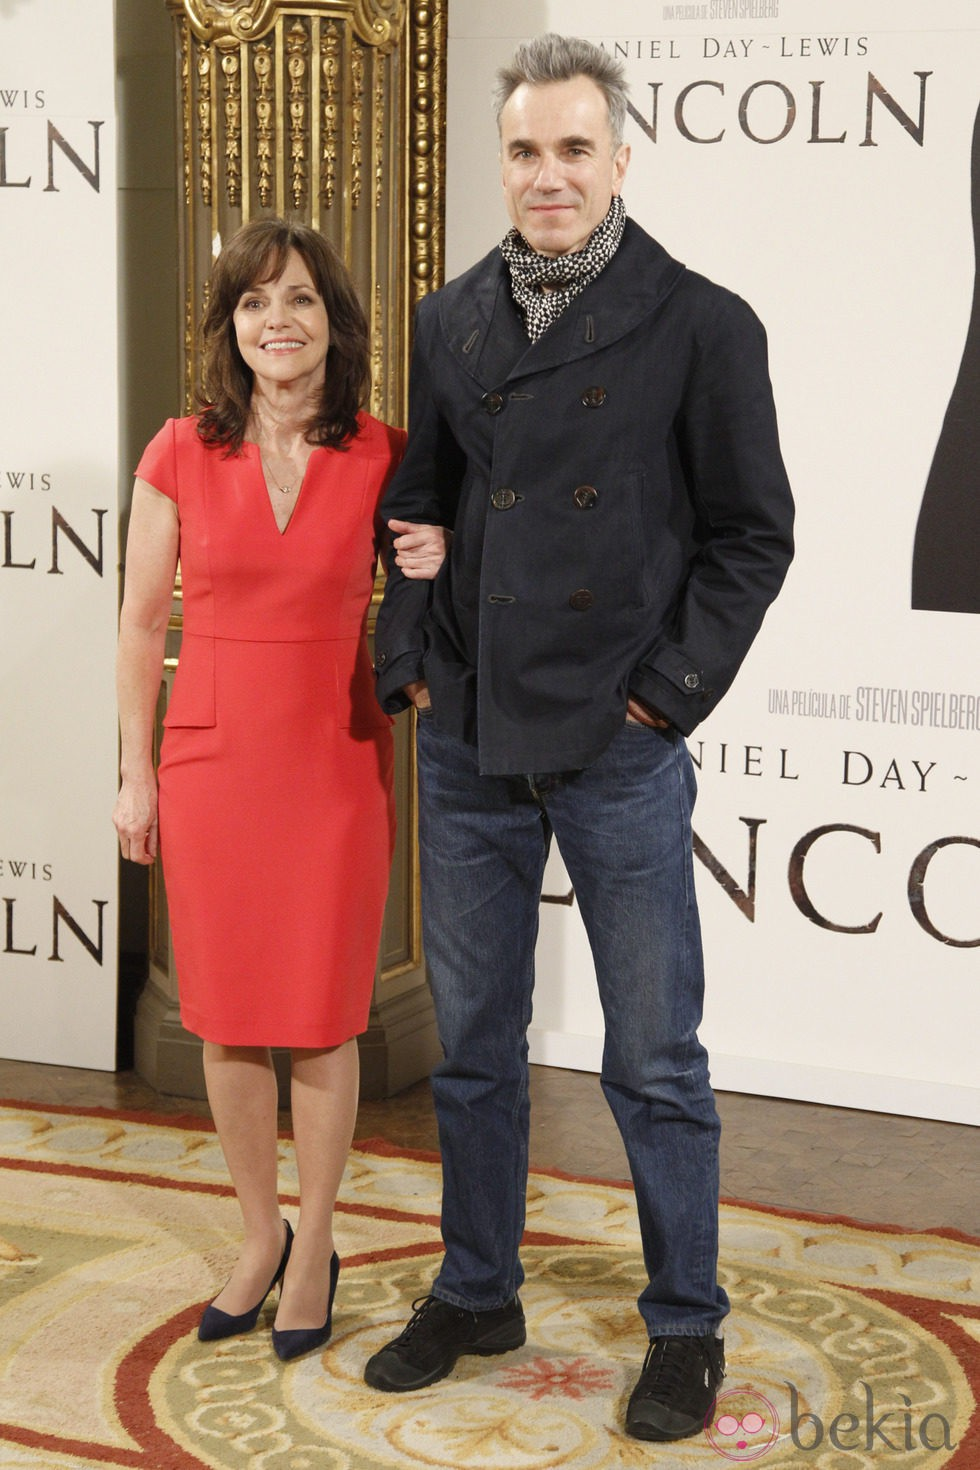 Daniel Day-Lewis y Sally Field en el estreno de 'Lincoln' en Madrid